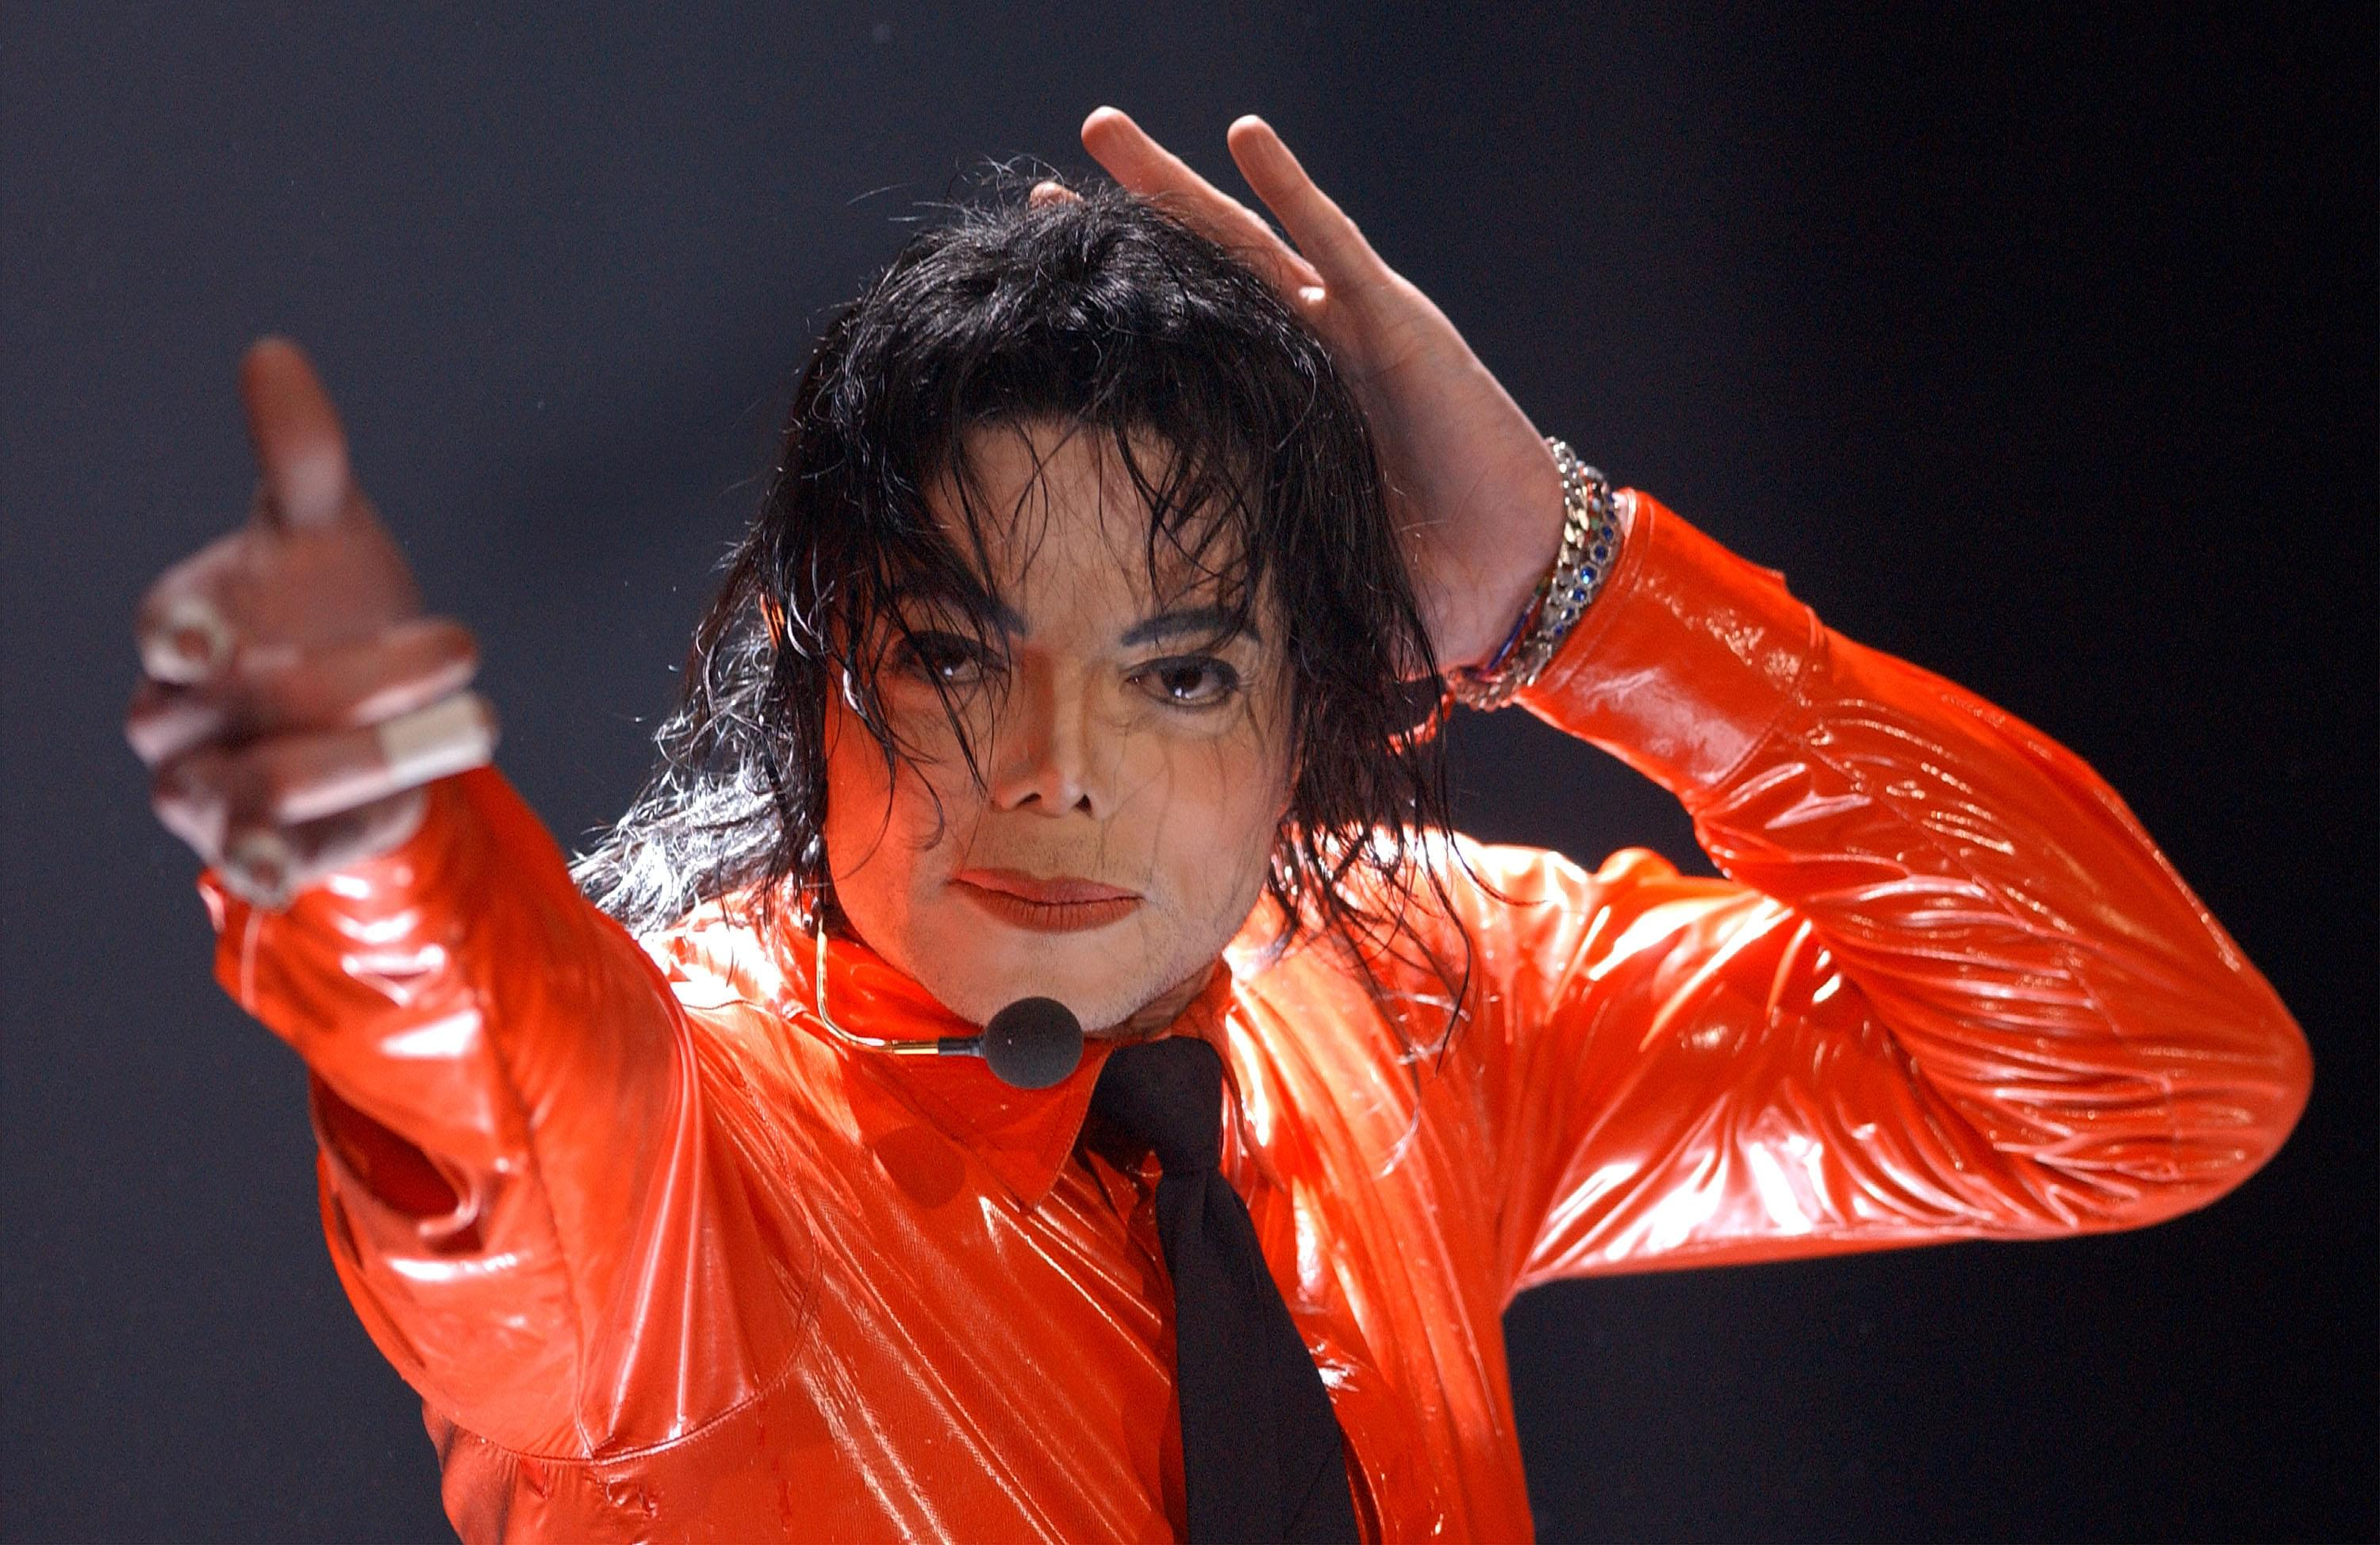 Michael Jackson's 'Thriller' To Be Remastered In IMAX 3D